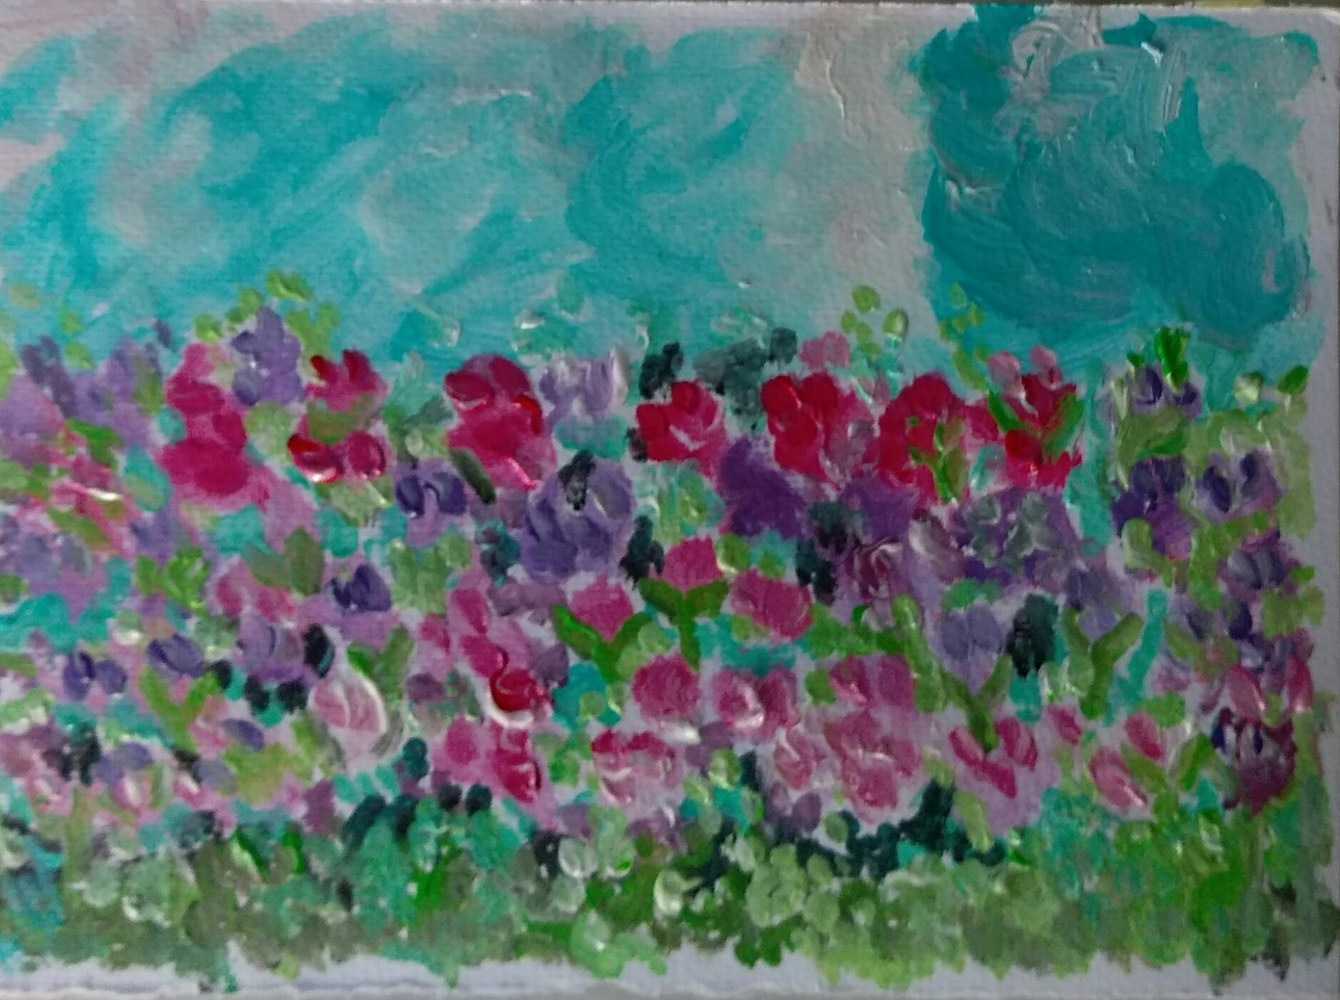 Acrylic painting Flowers in a Field by Gwenda Branjerdporn